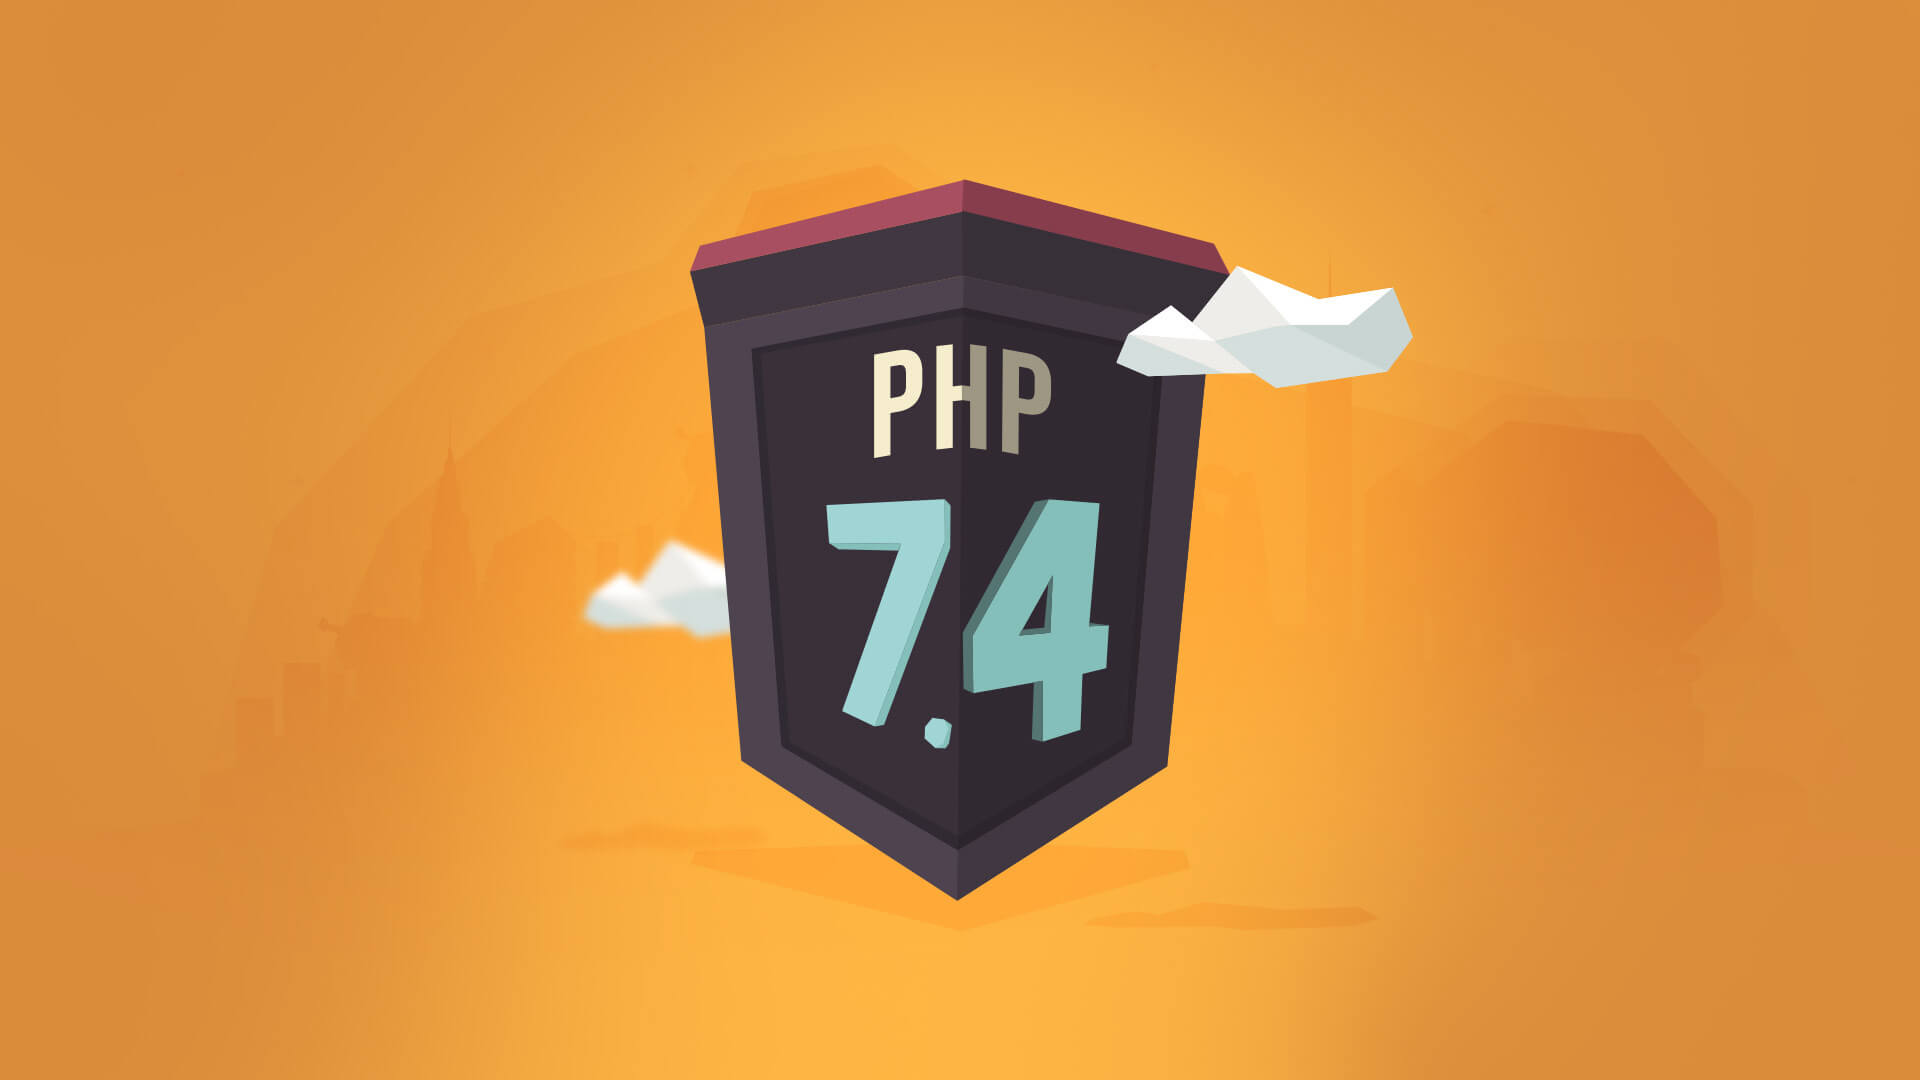 PHP 7.4 WebSupport release